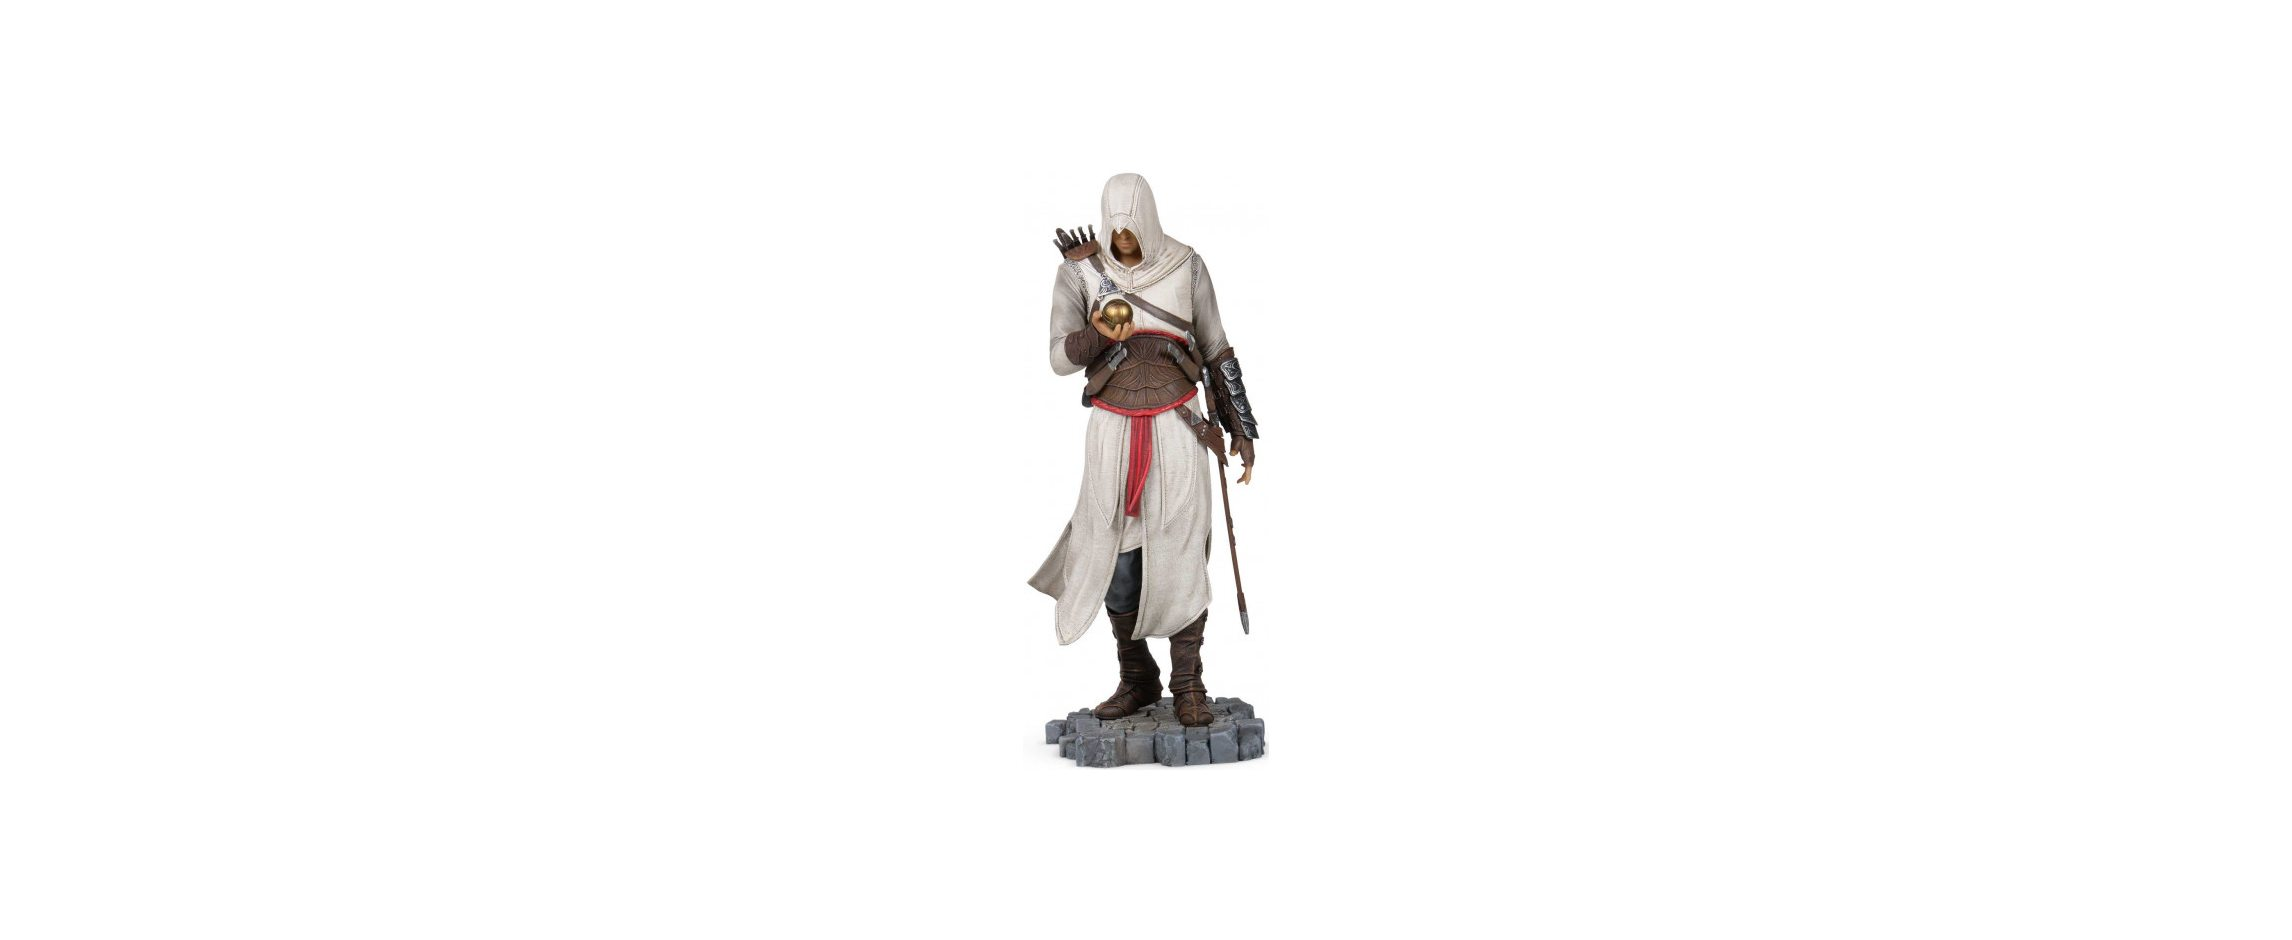 Фигурка Assassin's Creed Altair Apple Of Eden Keeper 24 см